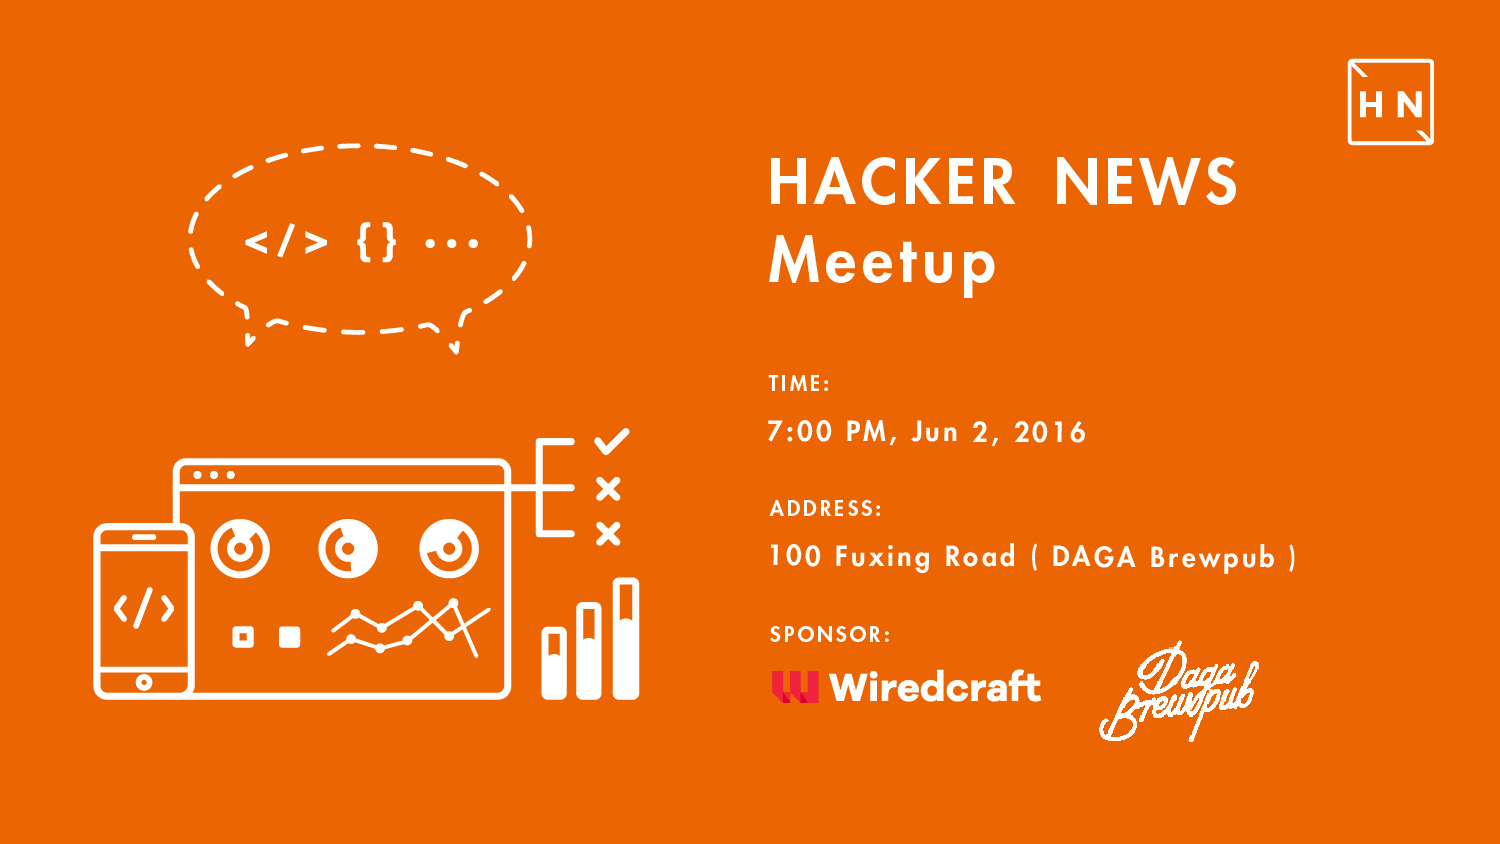 June Hacker News Meetup in Shanghai at DAGA Brewpub